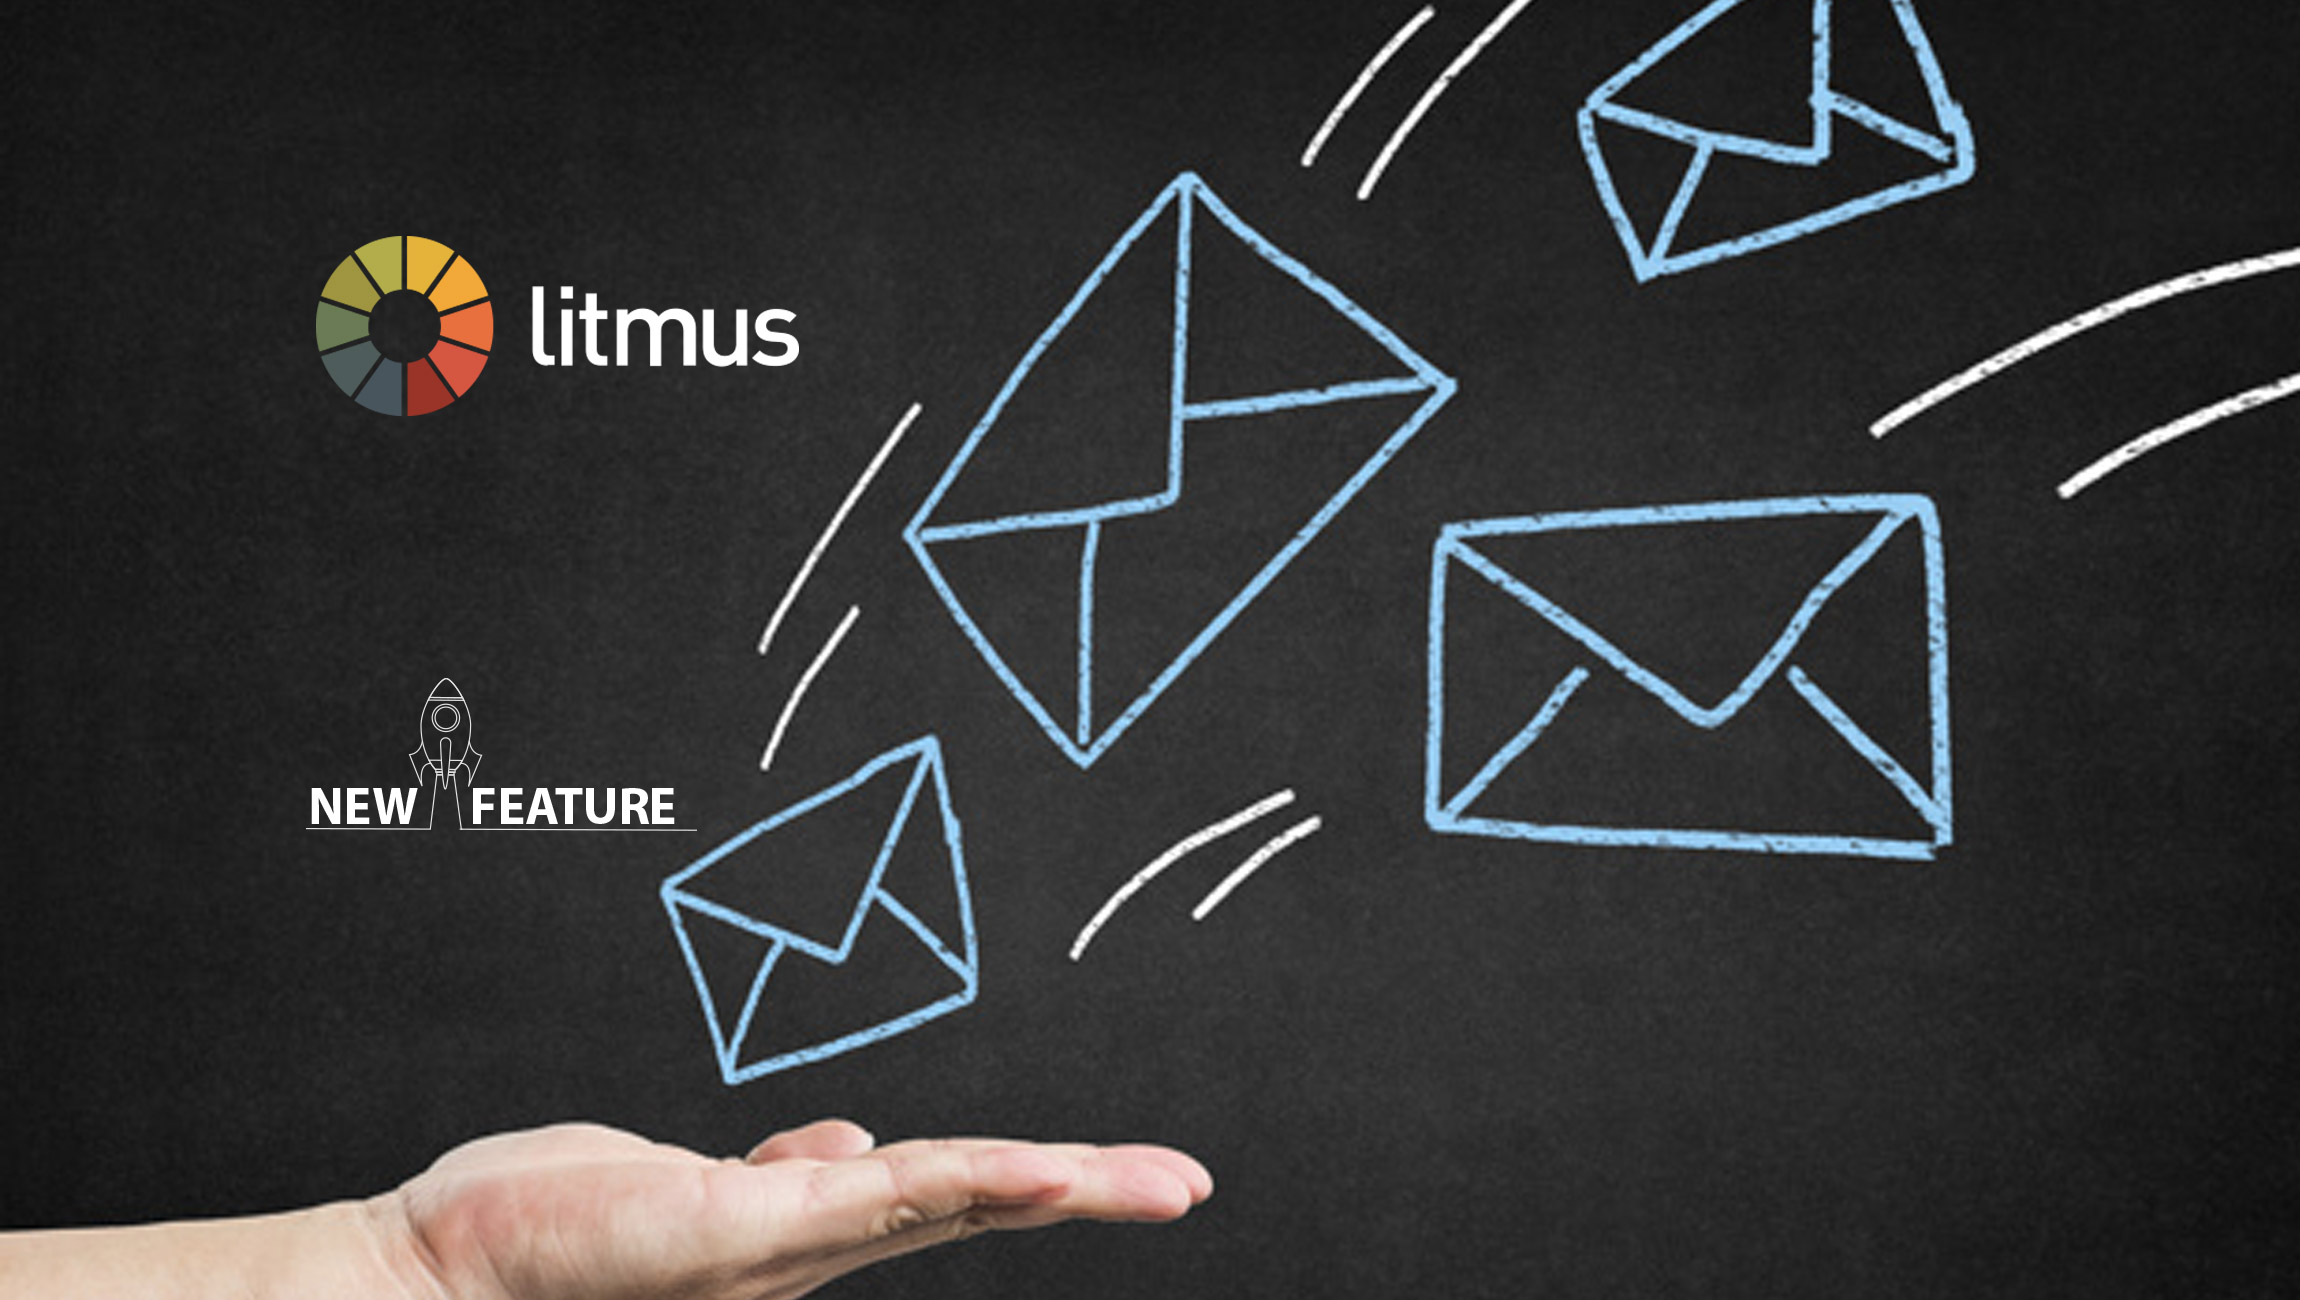 Email Marketing Platform Litmus Launches Data-Driven Recommendations To Boost Campaign Performance